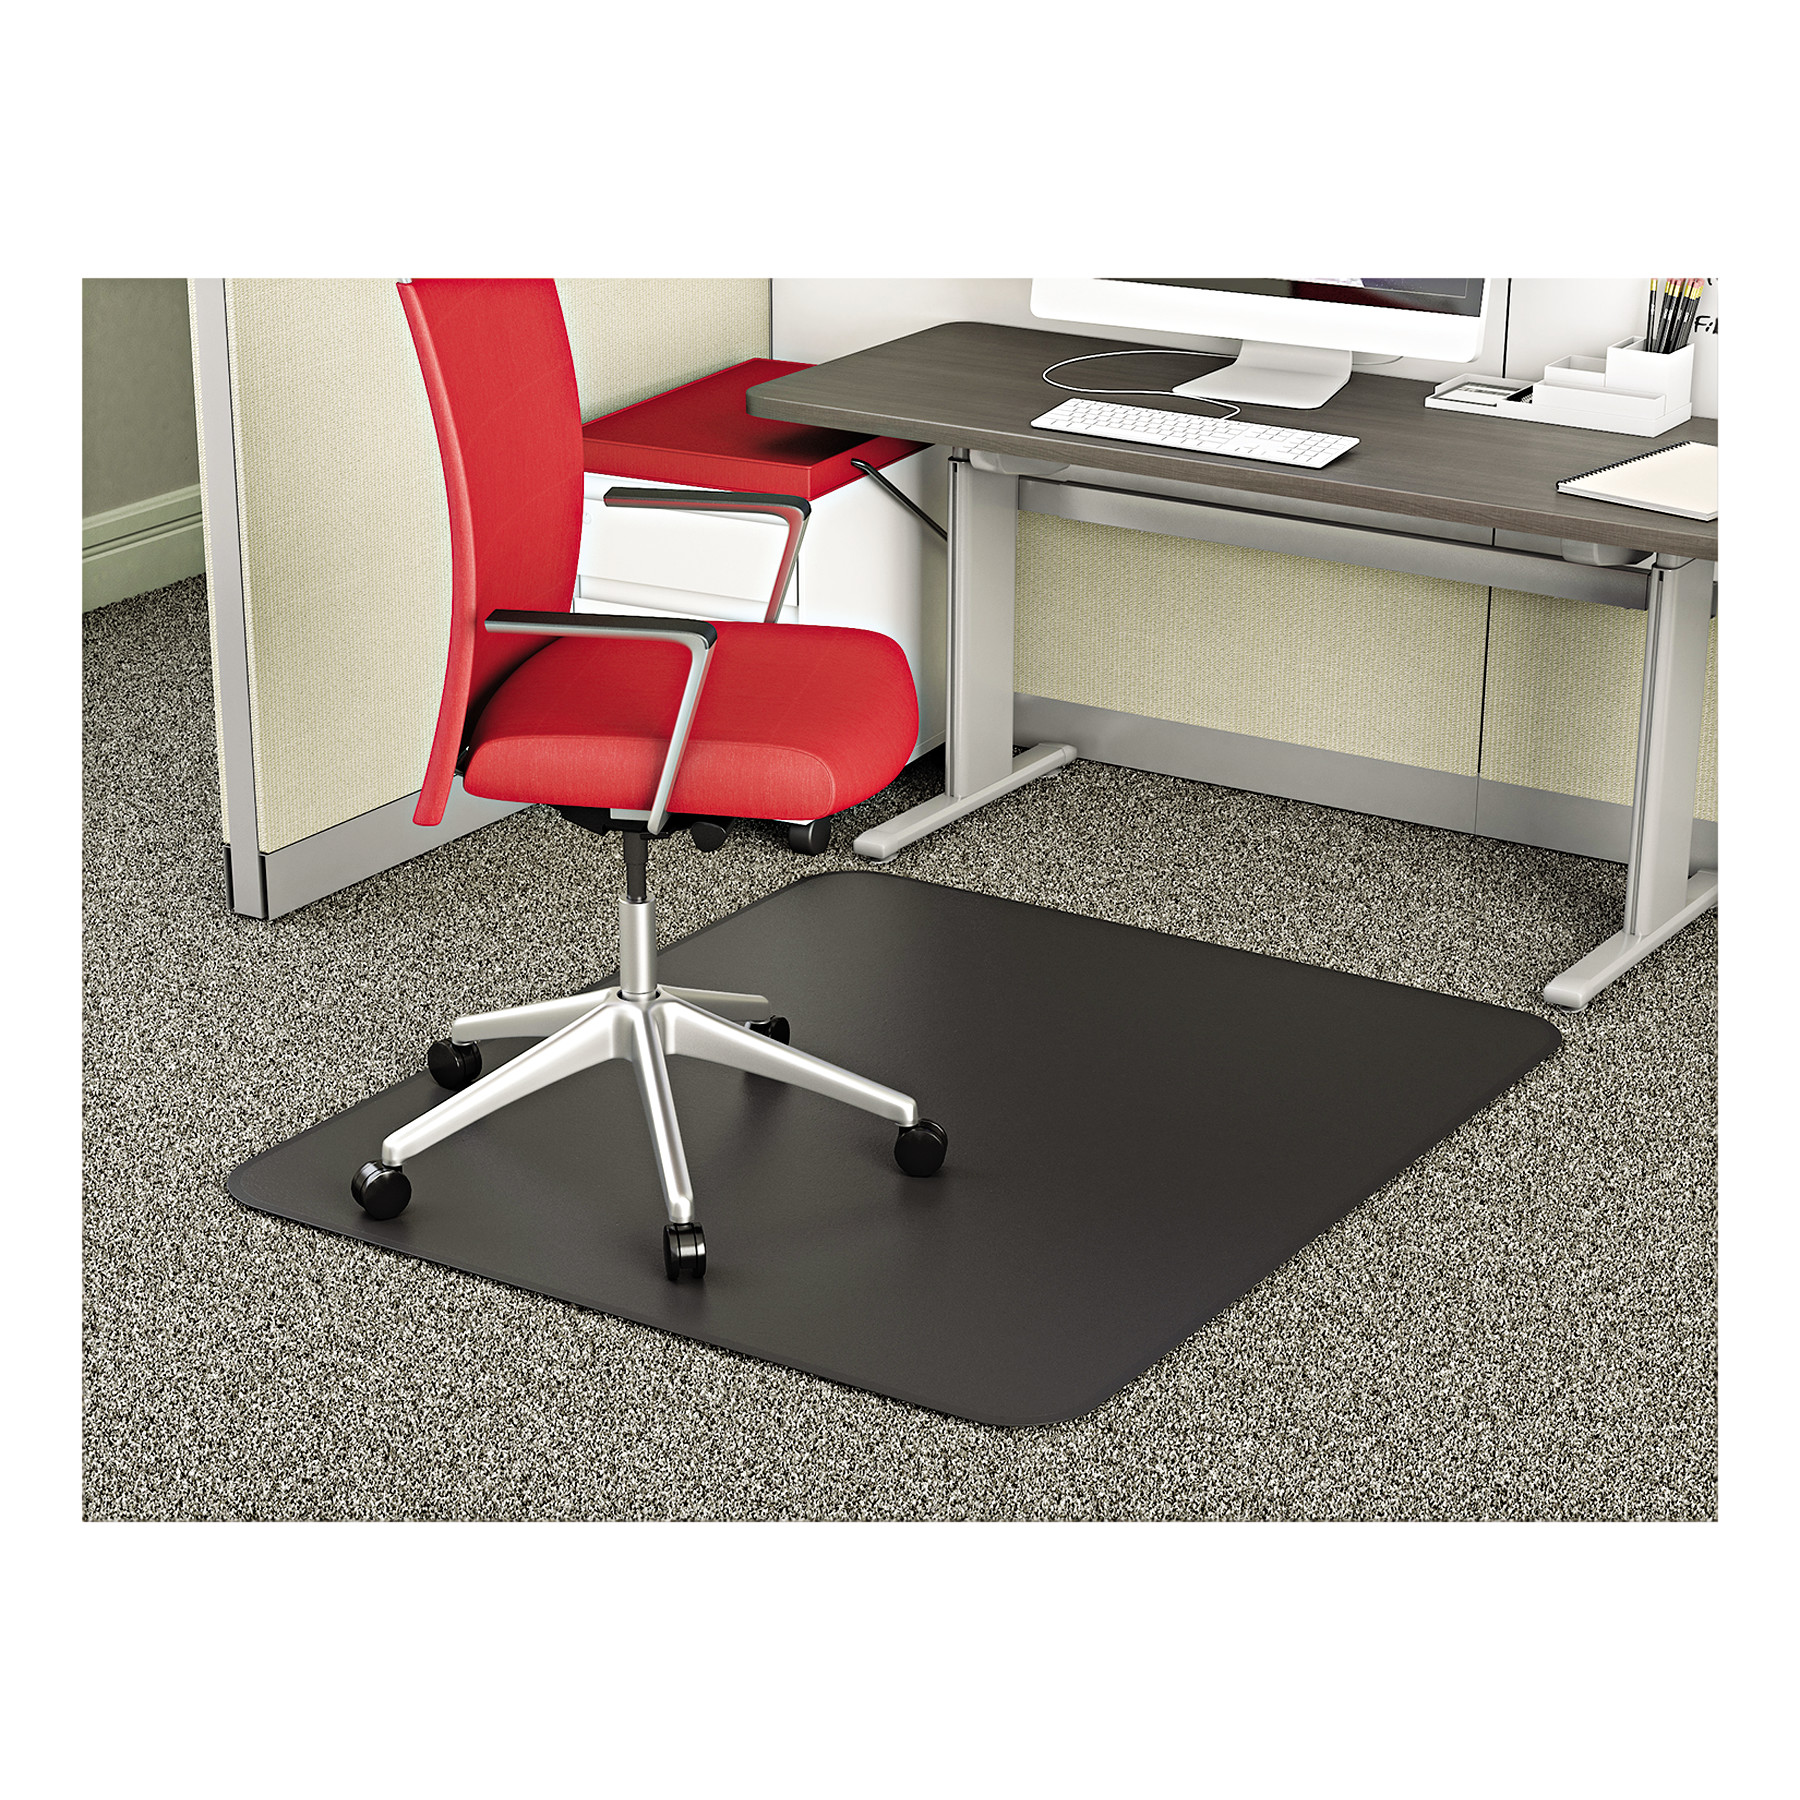 Deflecto SuperMat 45 x 53 Chair Mat for Medium Pile Carpet, Rectangular, Black